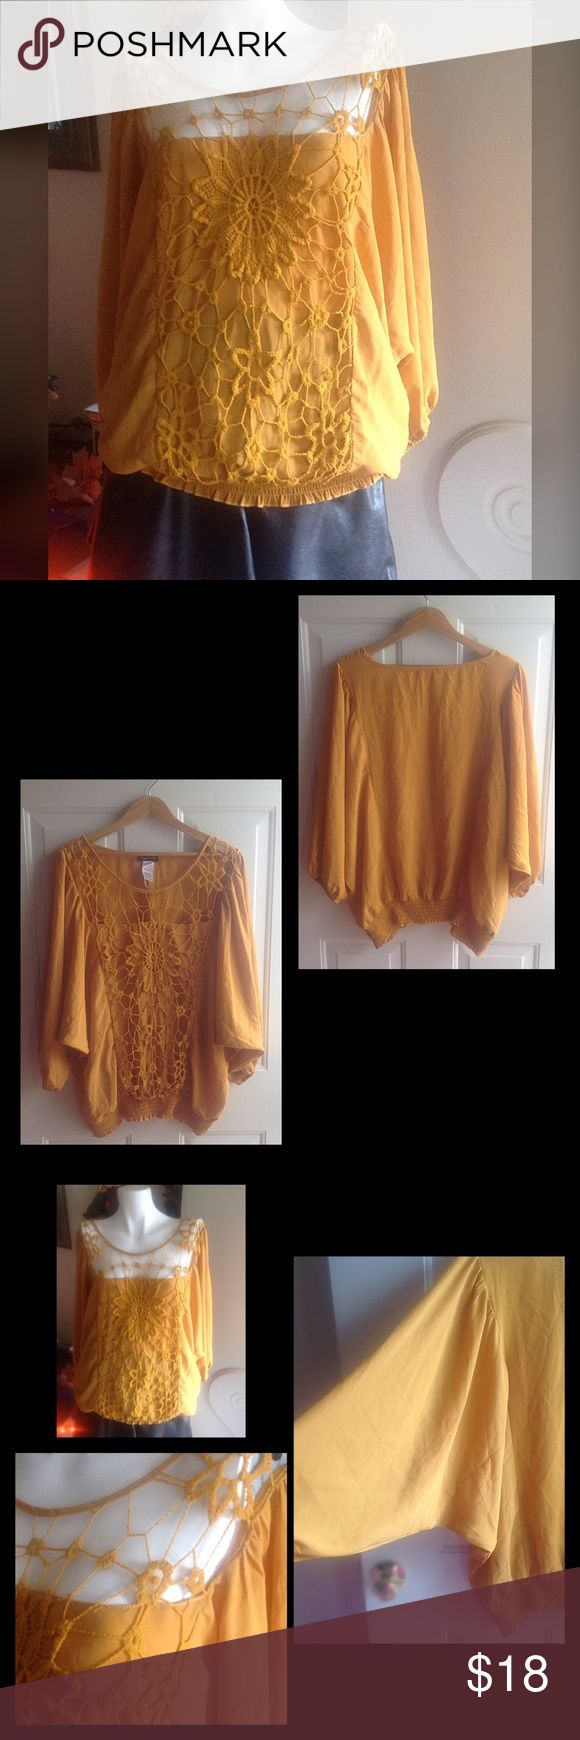 """Lovely blouse Mustard\honey gold color top. Gently worn. With knit detailing on the front. Batwing sleeves with elastic around waist of shirt. Size chart in last photo. From shoulder to bottom length is 26"""". Please see small hole in the knit detailing in the front ( last photo). Price reflects imperfection. Tops"""